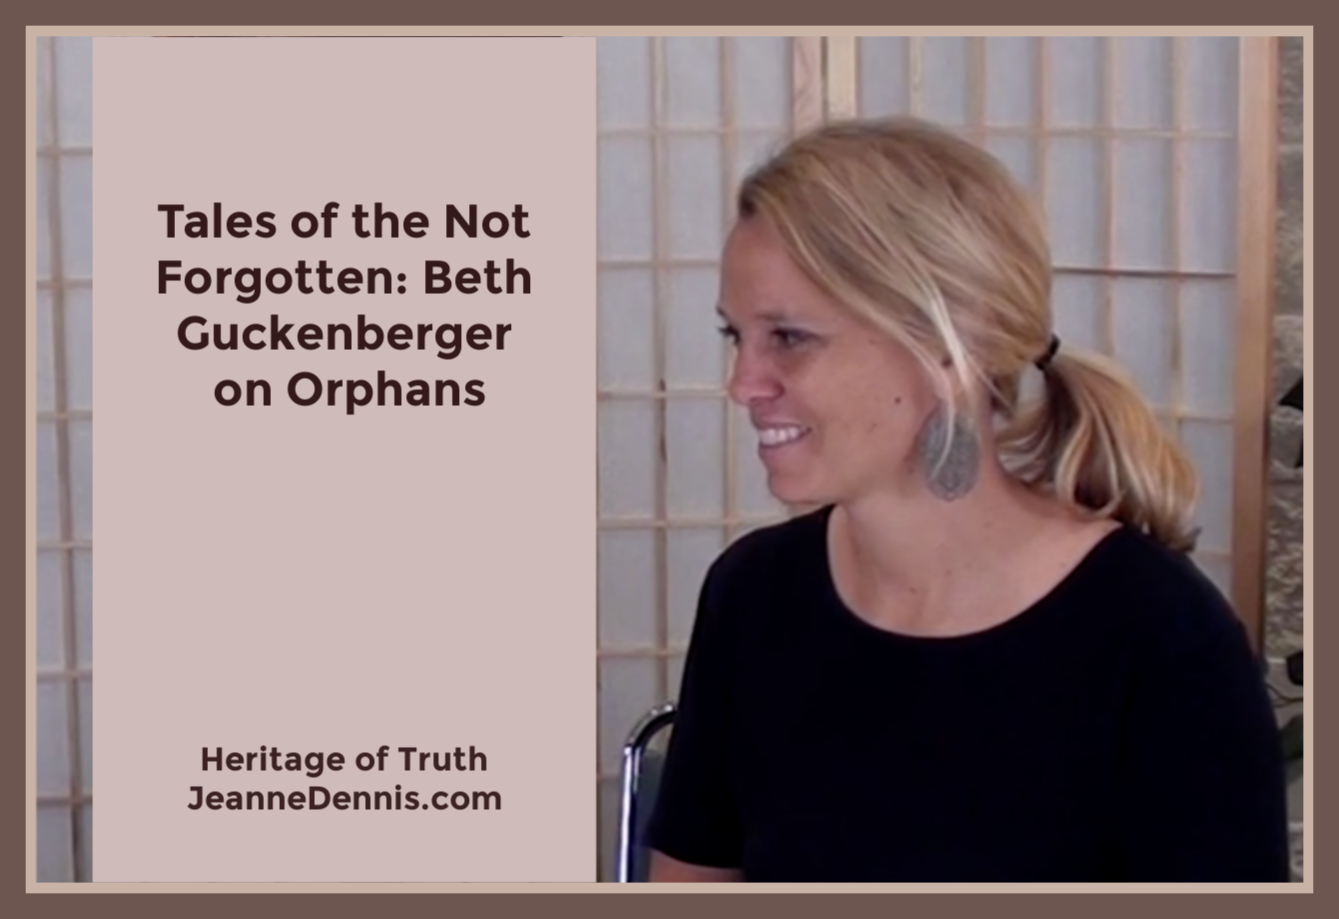 Tales of the Not Forgotten: Beth Guckenberger on Orphans, Heritage of Truth, JeanneDennis.com